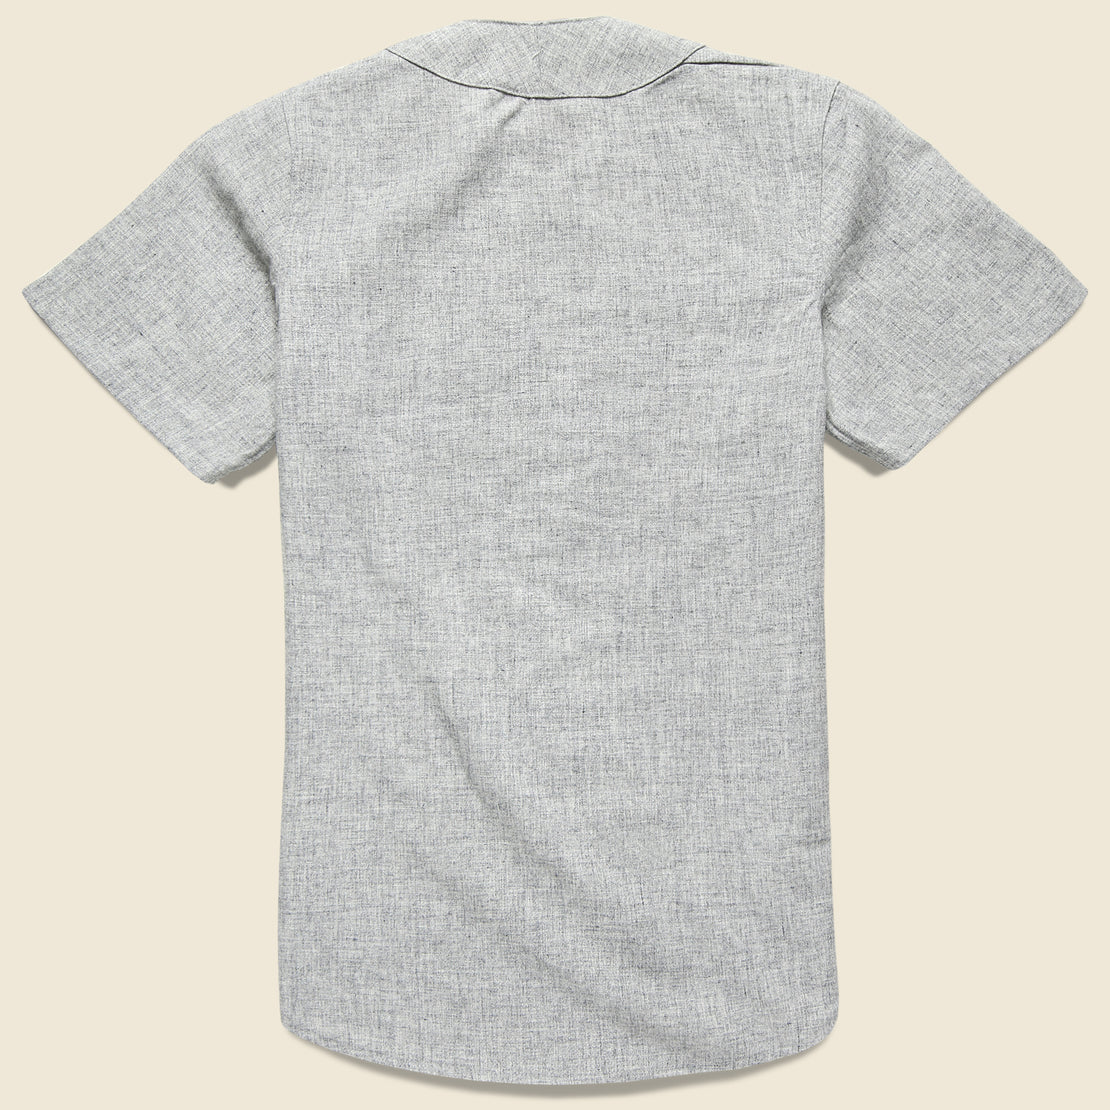 Texas Baseball Jersey - Grey